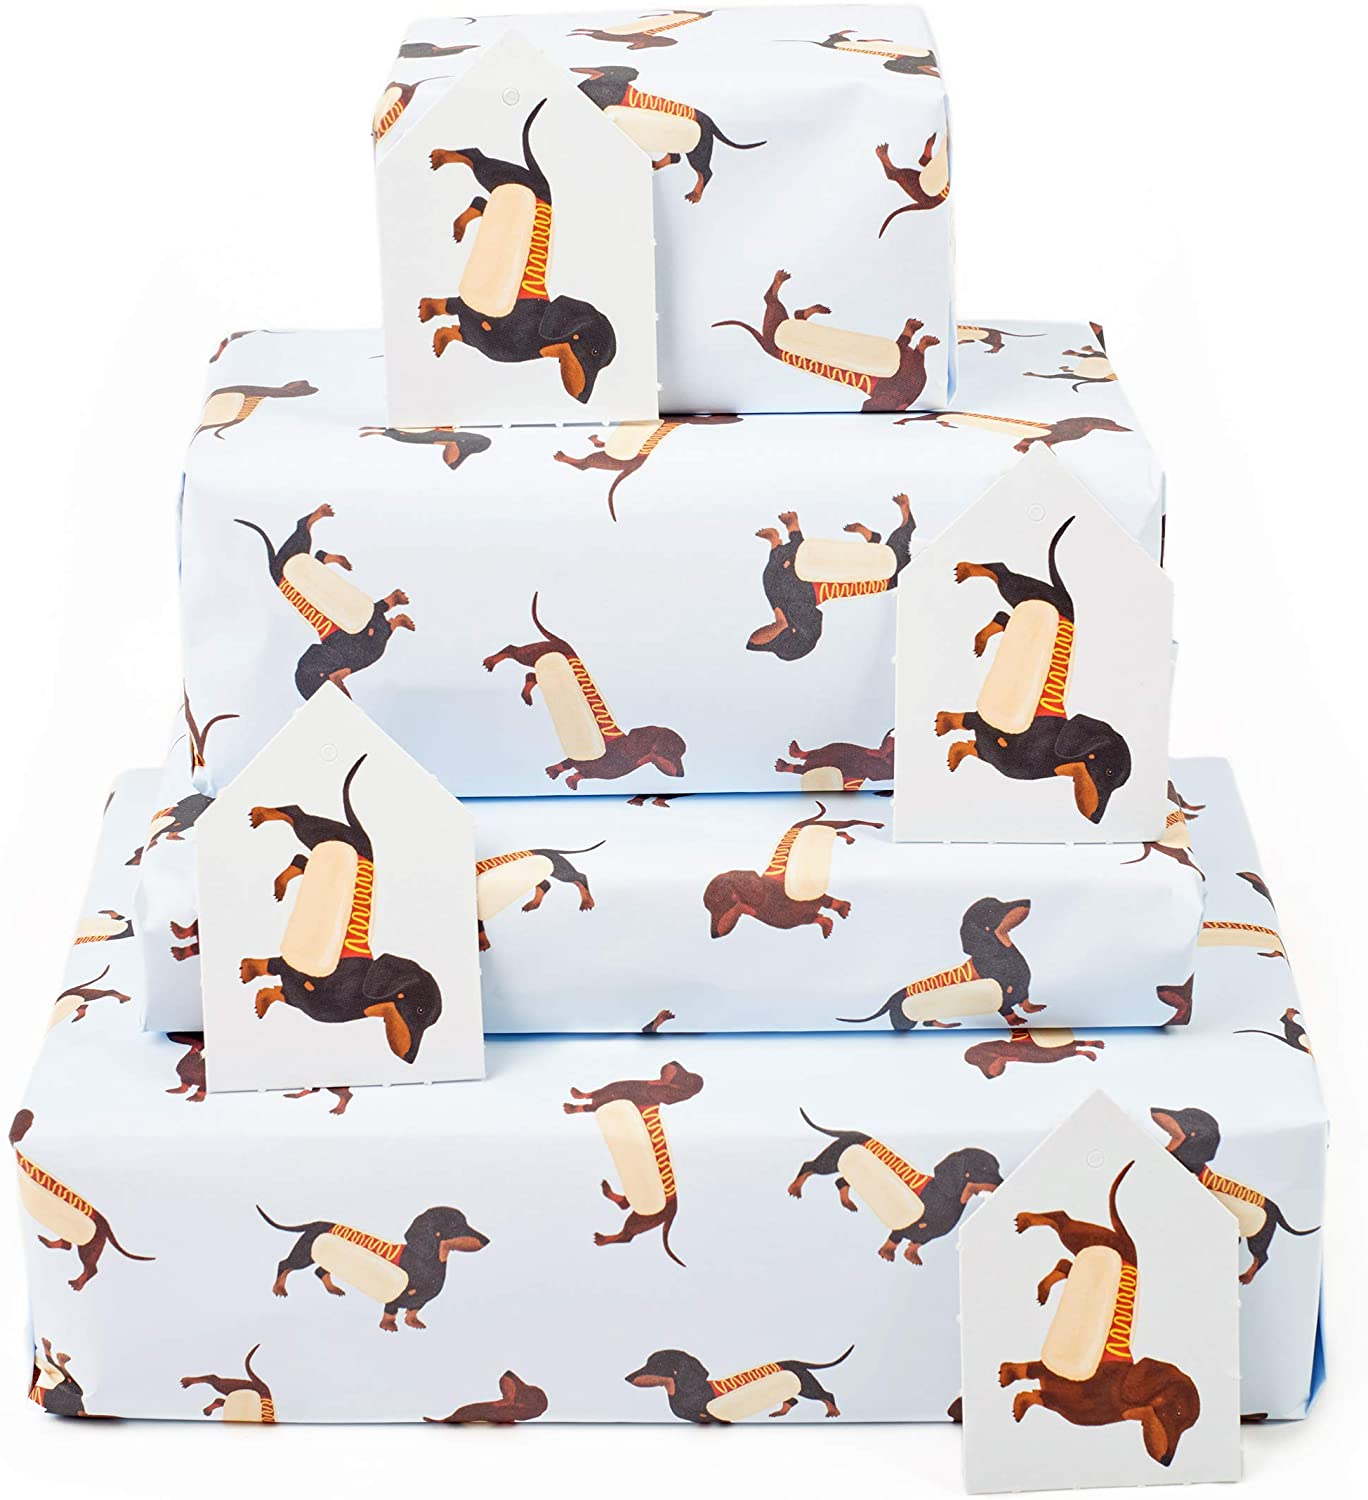 dachshund-gifts-paper